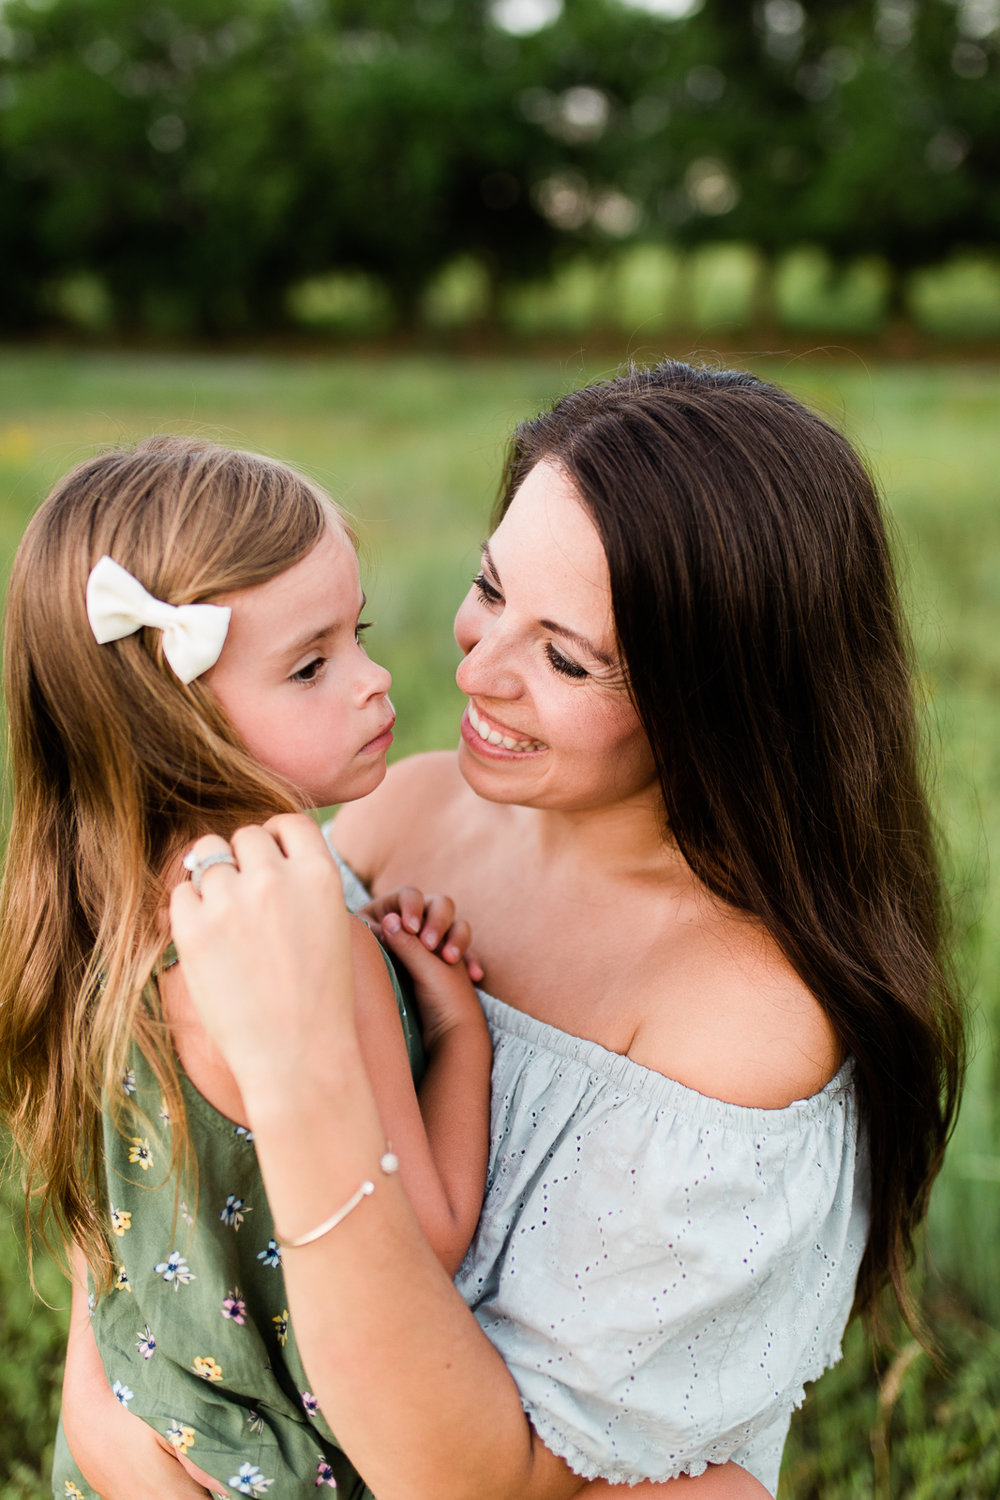 Mother caresses daughter's hair, mommy and me session at Shawnee Mission Park, Kansas City family photographer